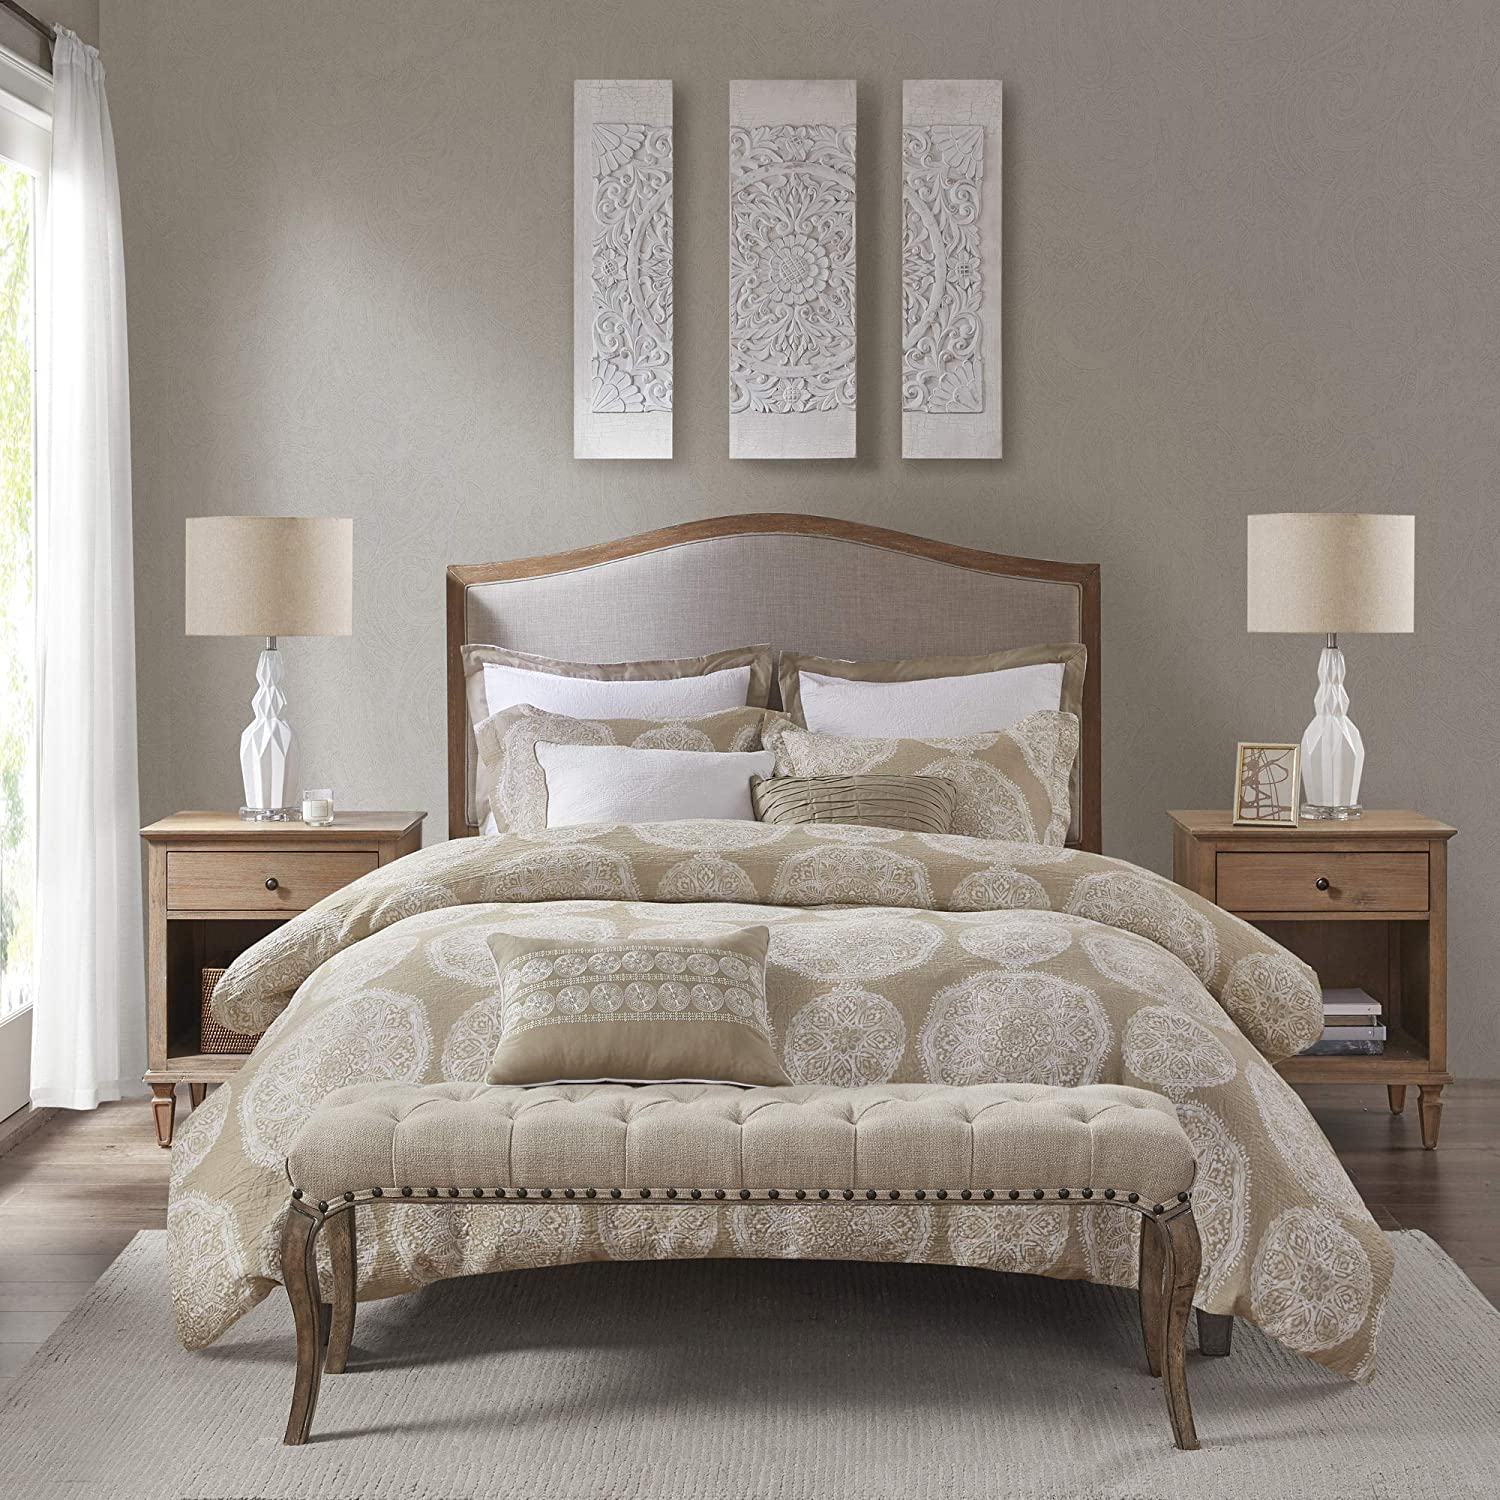 """MADISON PARK SIGNATURE MPS10-442 Duvet Style 100% Cotton Comforter with Removable Cover, Medallion Print Classic Luxe All Season Down Alternative Bed Set, Queen(92""""x96""""), Neutral 8 Piece"""